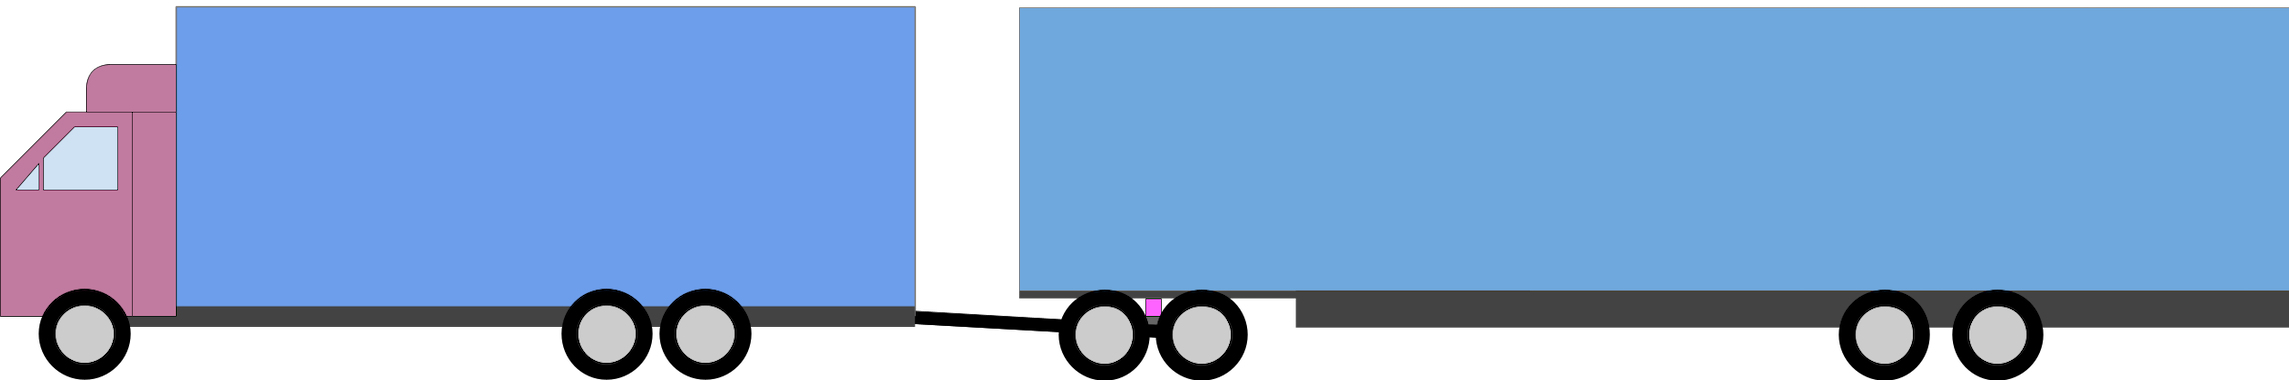 A 3-axle truck with a 4 axle trailer.